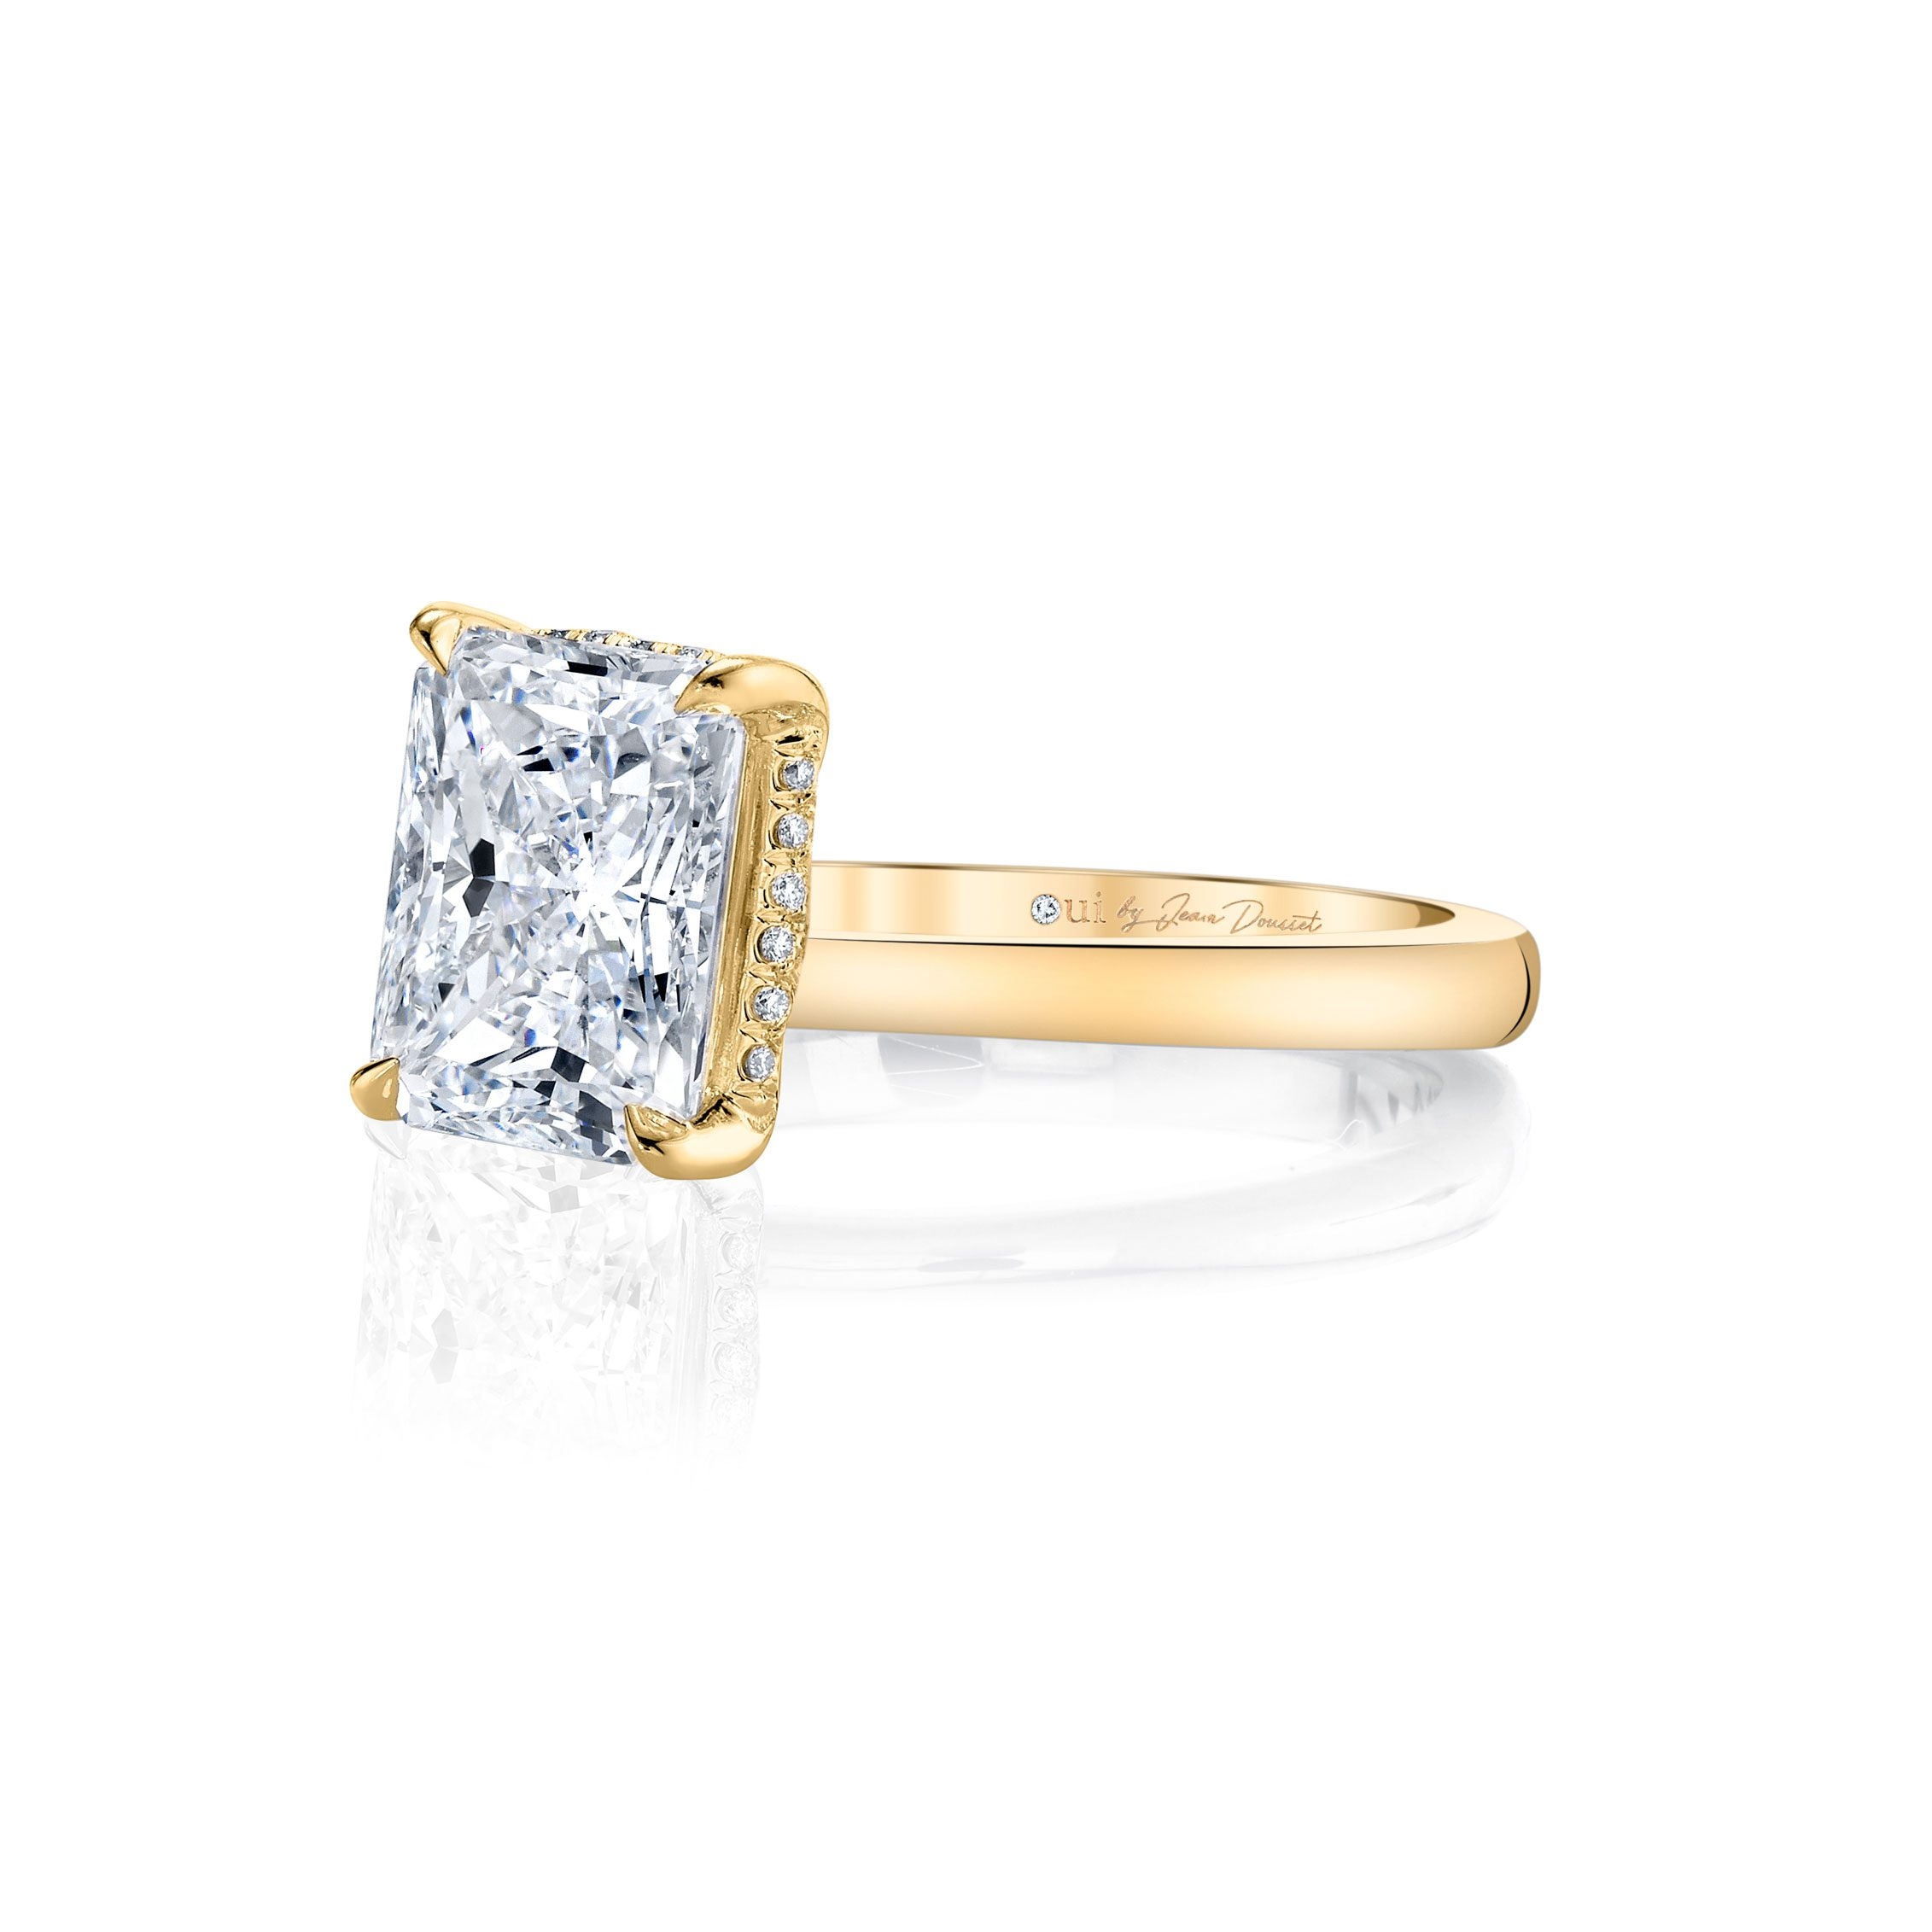 Colette Solitaire Radiant Cut Lab Grown Diamond Engagement Ring in 18k yellow gold band.